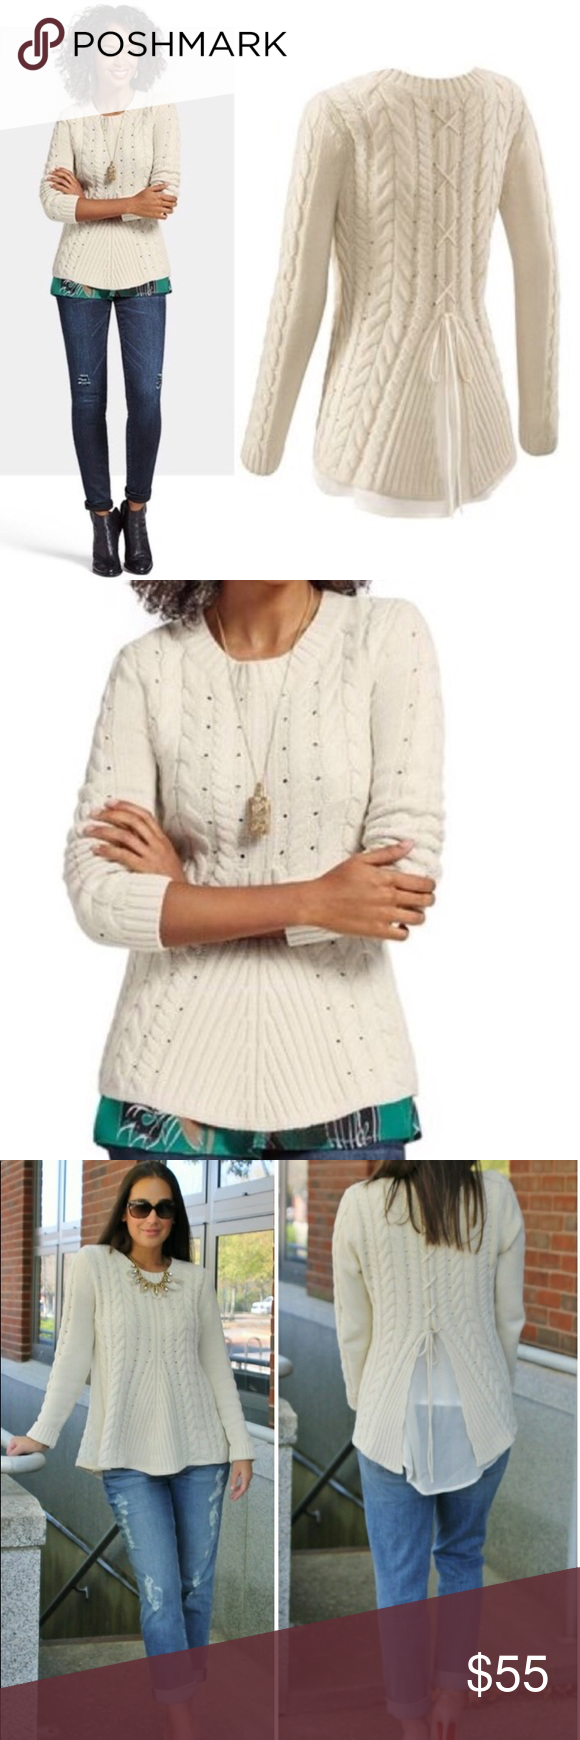 fefa111d91 Cabi style 3157 lace up fly away sweater Excellent condition CAbi Sweaters  Crew   Scoop Necks